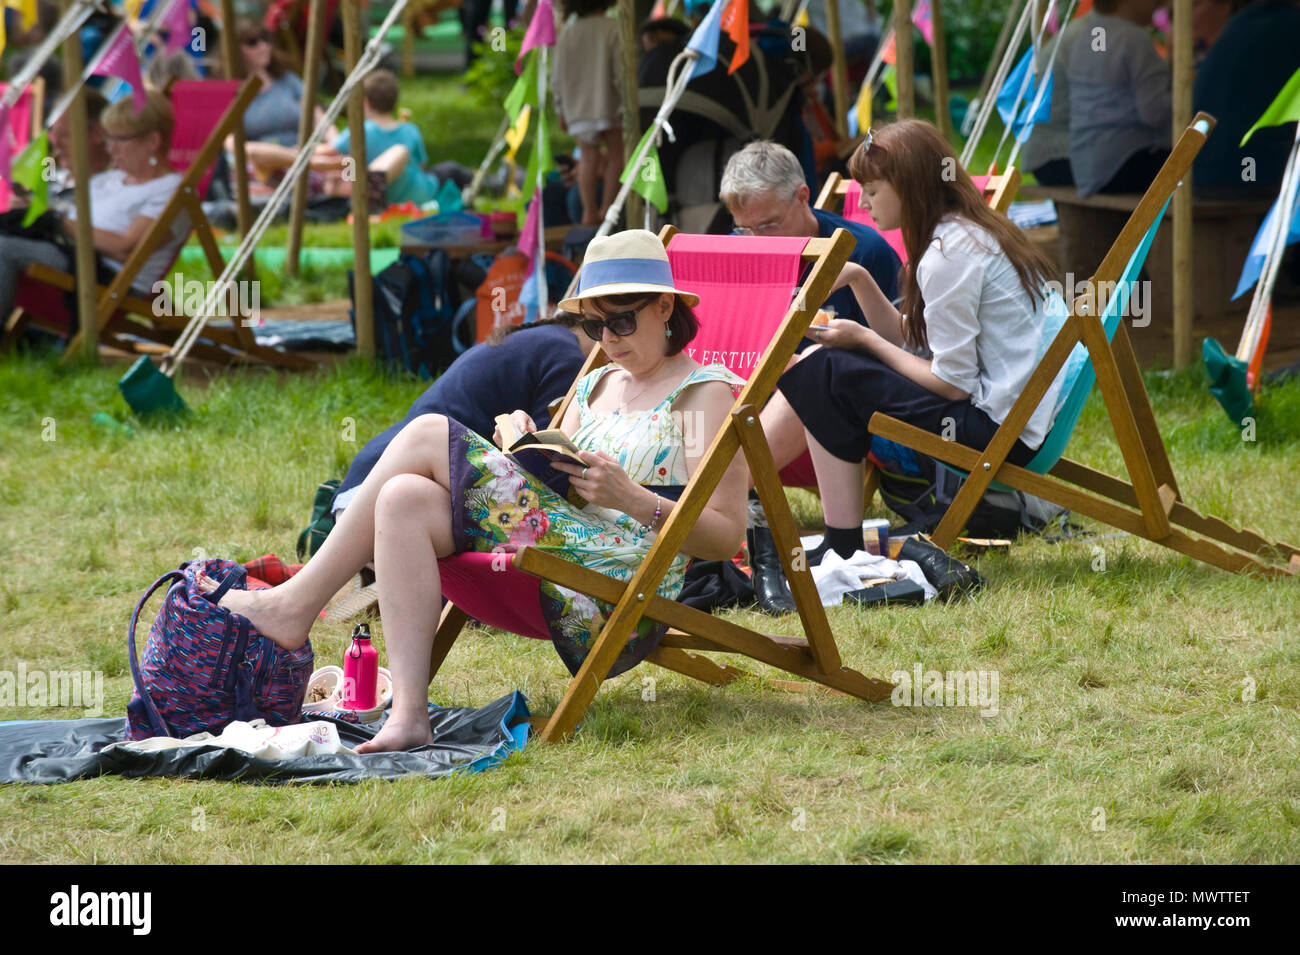 Young woman sat in deckchair reading a book on the lawn in the garden area at Hay Festival 2018 Hay-on-Wye Powys Wales UK - Stock Image